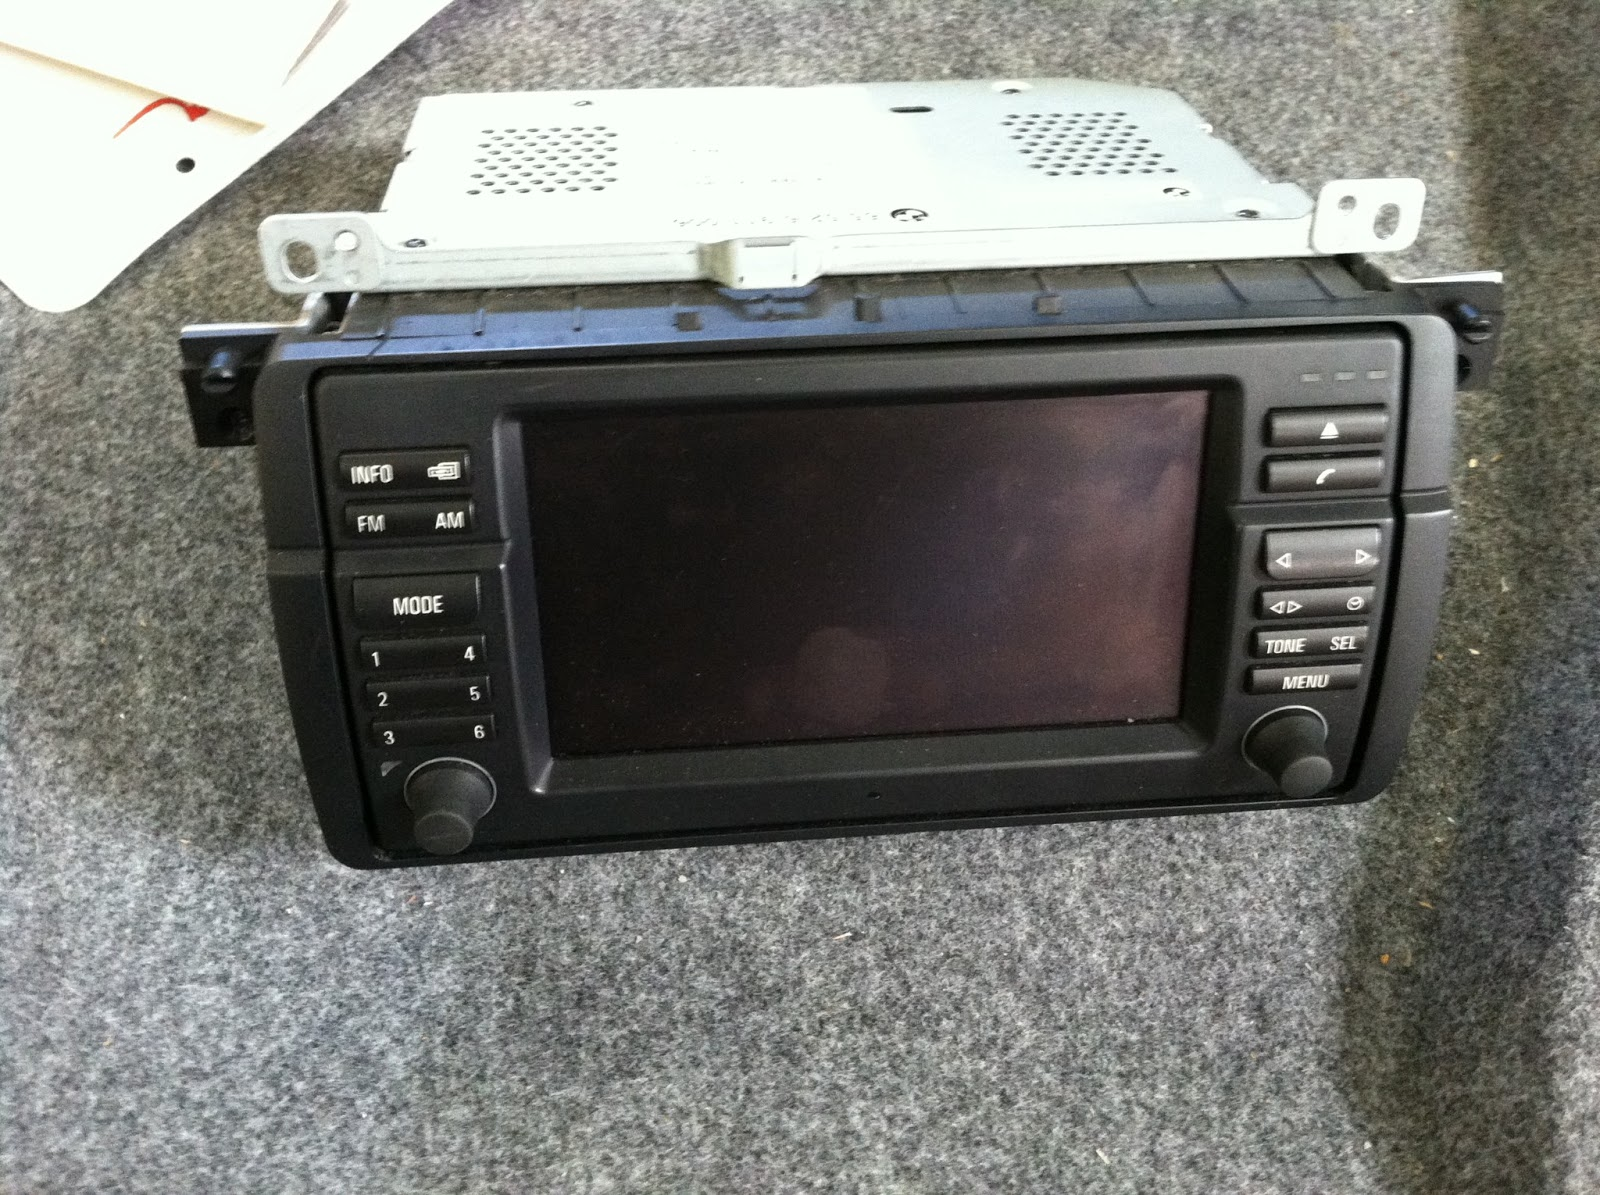 Product info furthermore Bmw E46 Double Din Aftermarket besides Accord likewise 561542647275890571 moreover How To Remove A Radio In 2006 2007 2008 Dodge Caliber For Aftermarket Gps Navigation. on toyota replacement radios